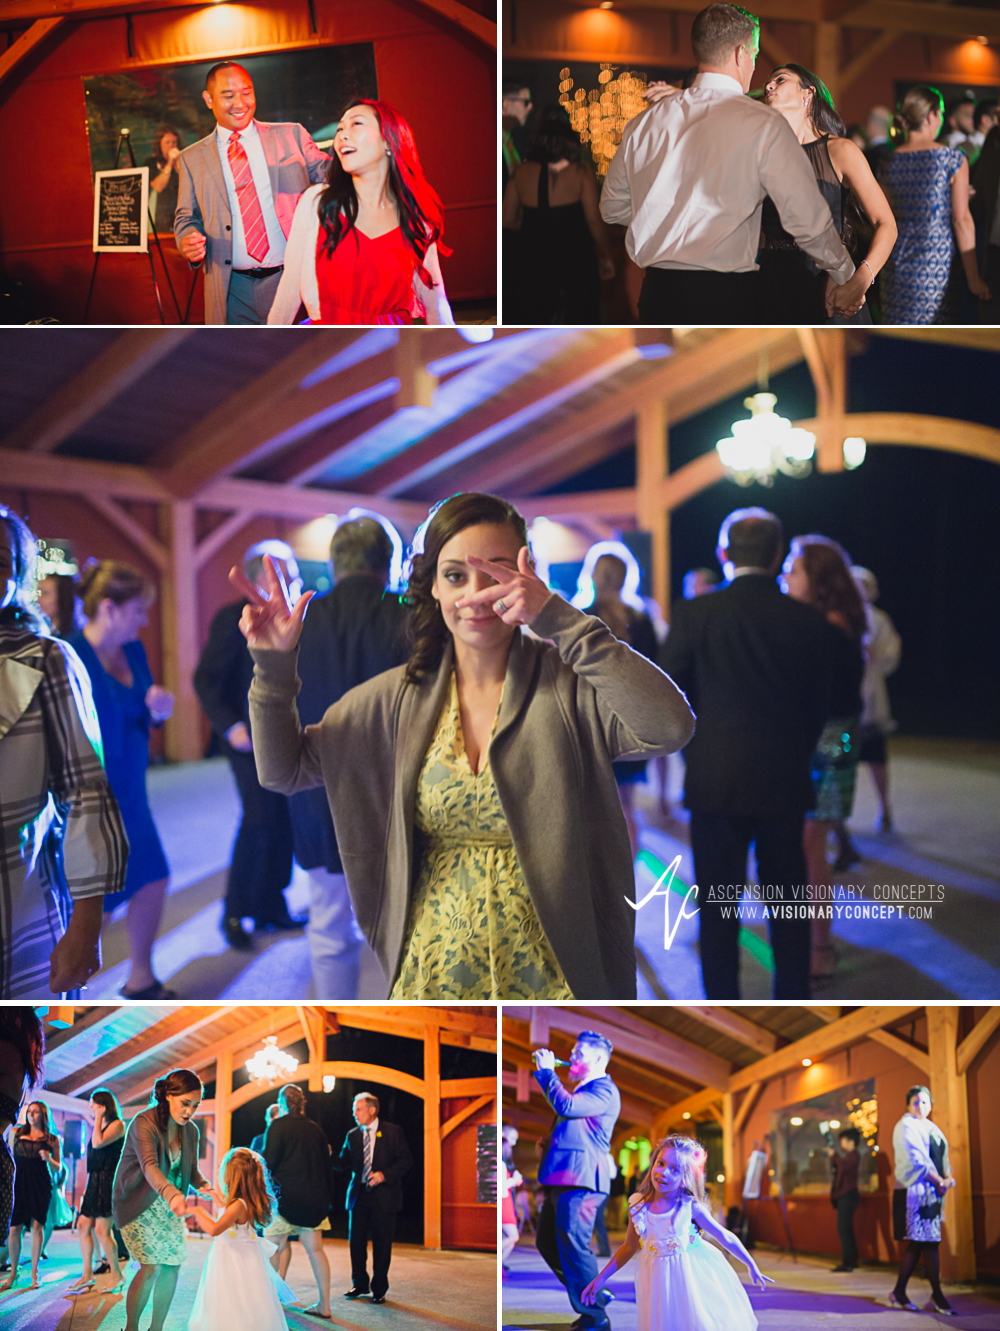 Buffalo Wedding Photography Spring Lake Winery 089 - Wedding Reception Dancing Party Lights.jpg